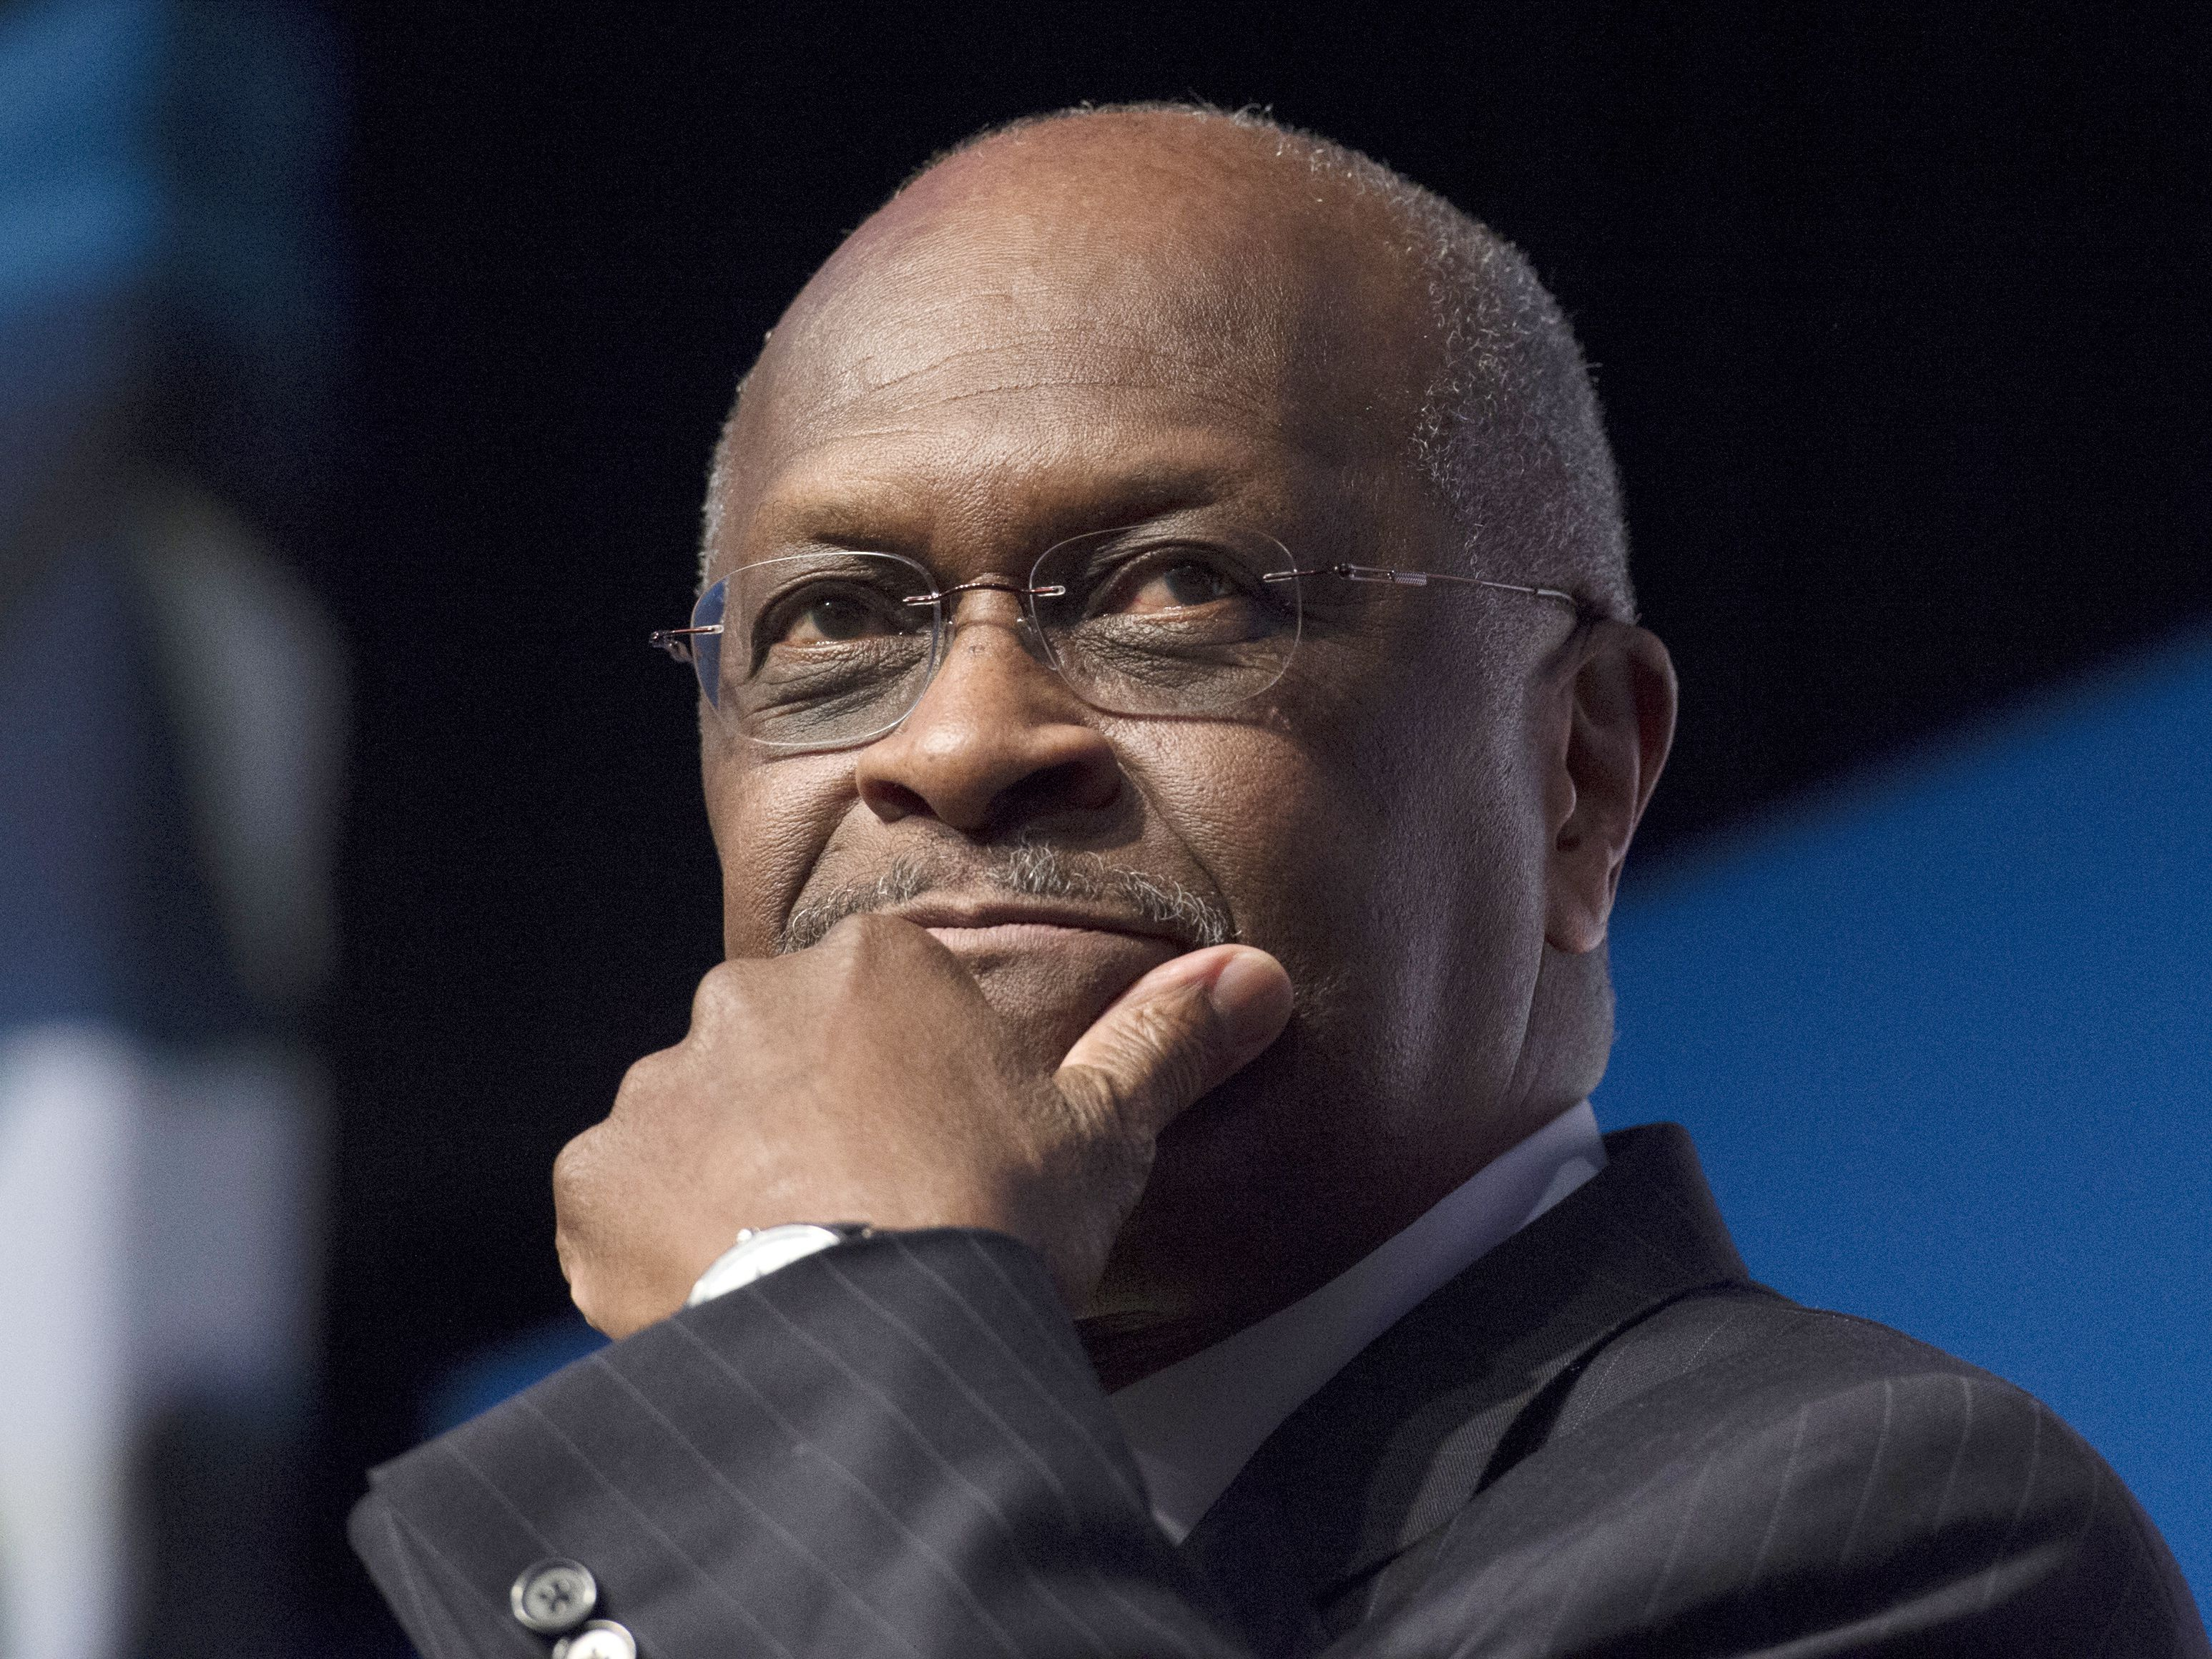 Trump says Herman Cain withdraws from consideration for Fed seat